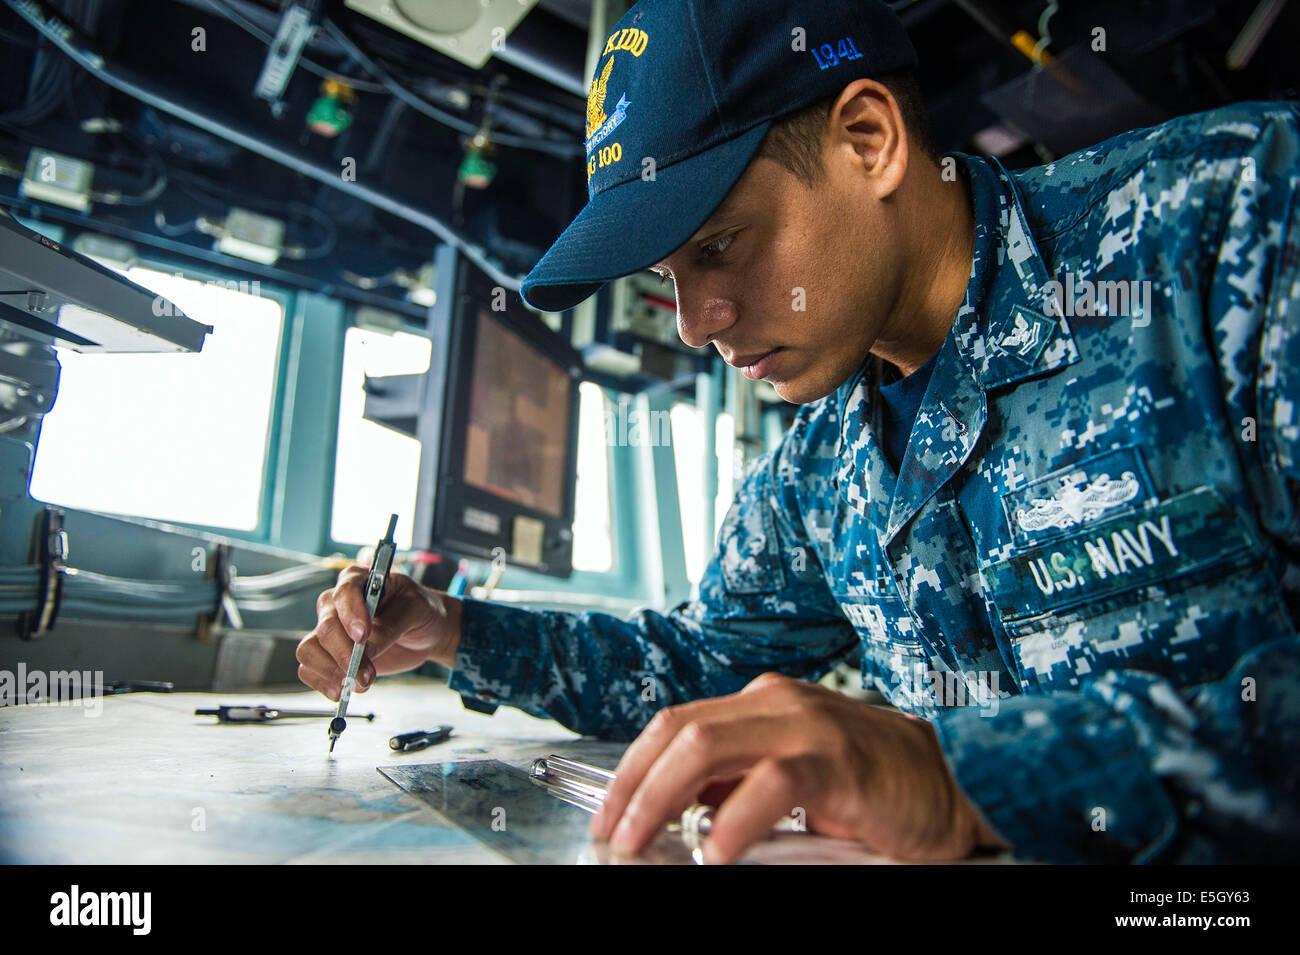 U.S. Navy Quartermaster 2nd Class Jacques Chenet, assigned to the ...